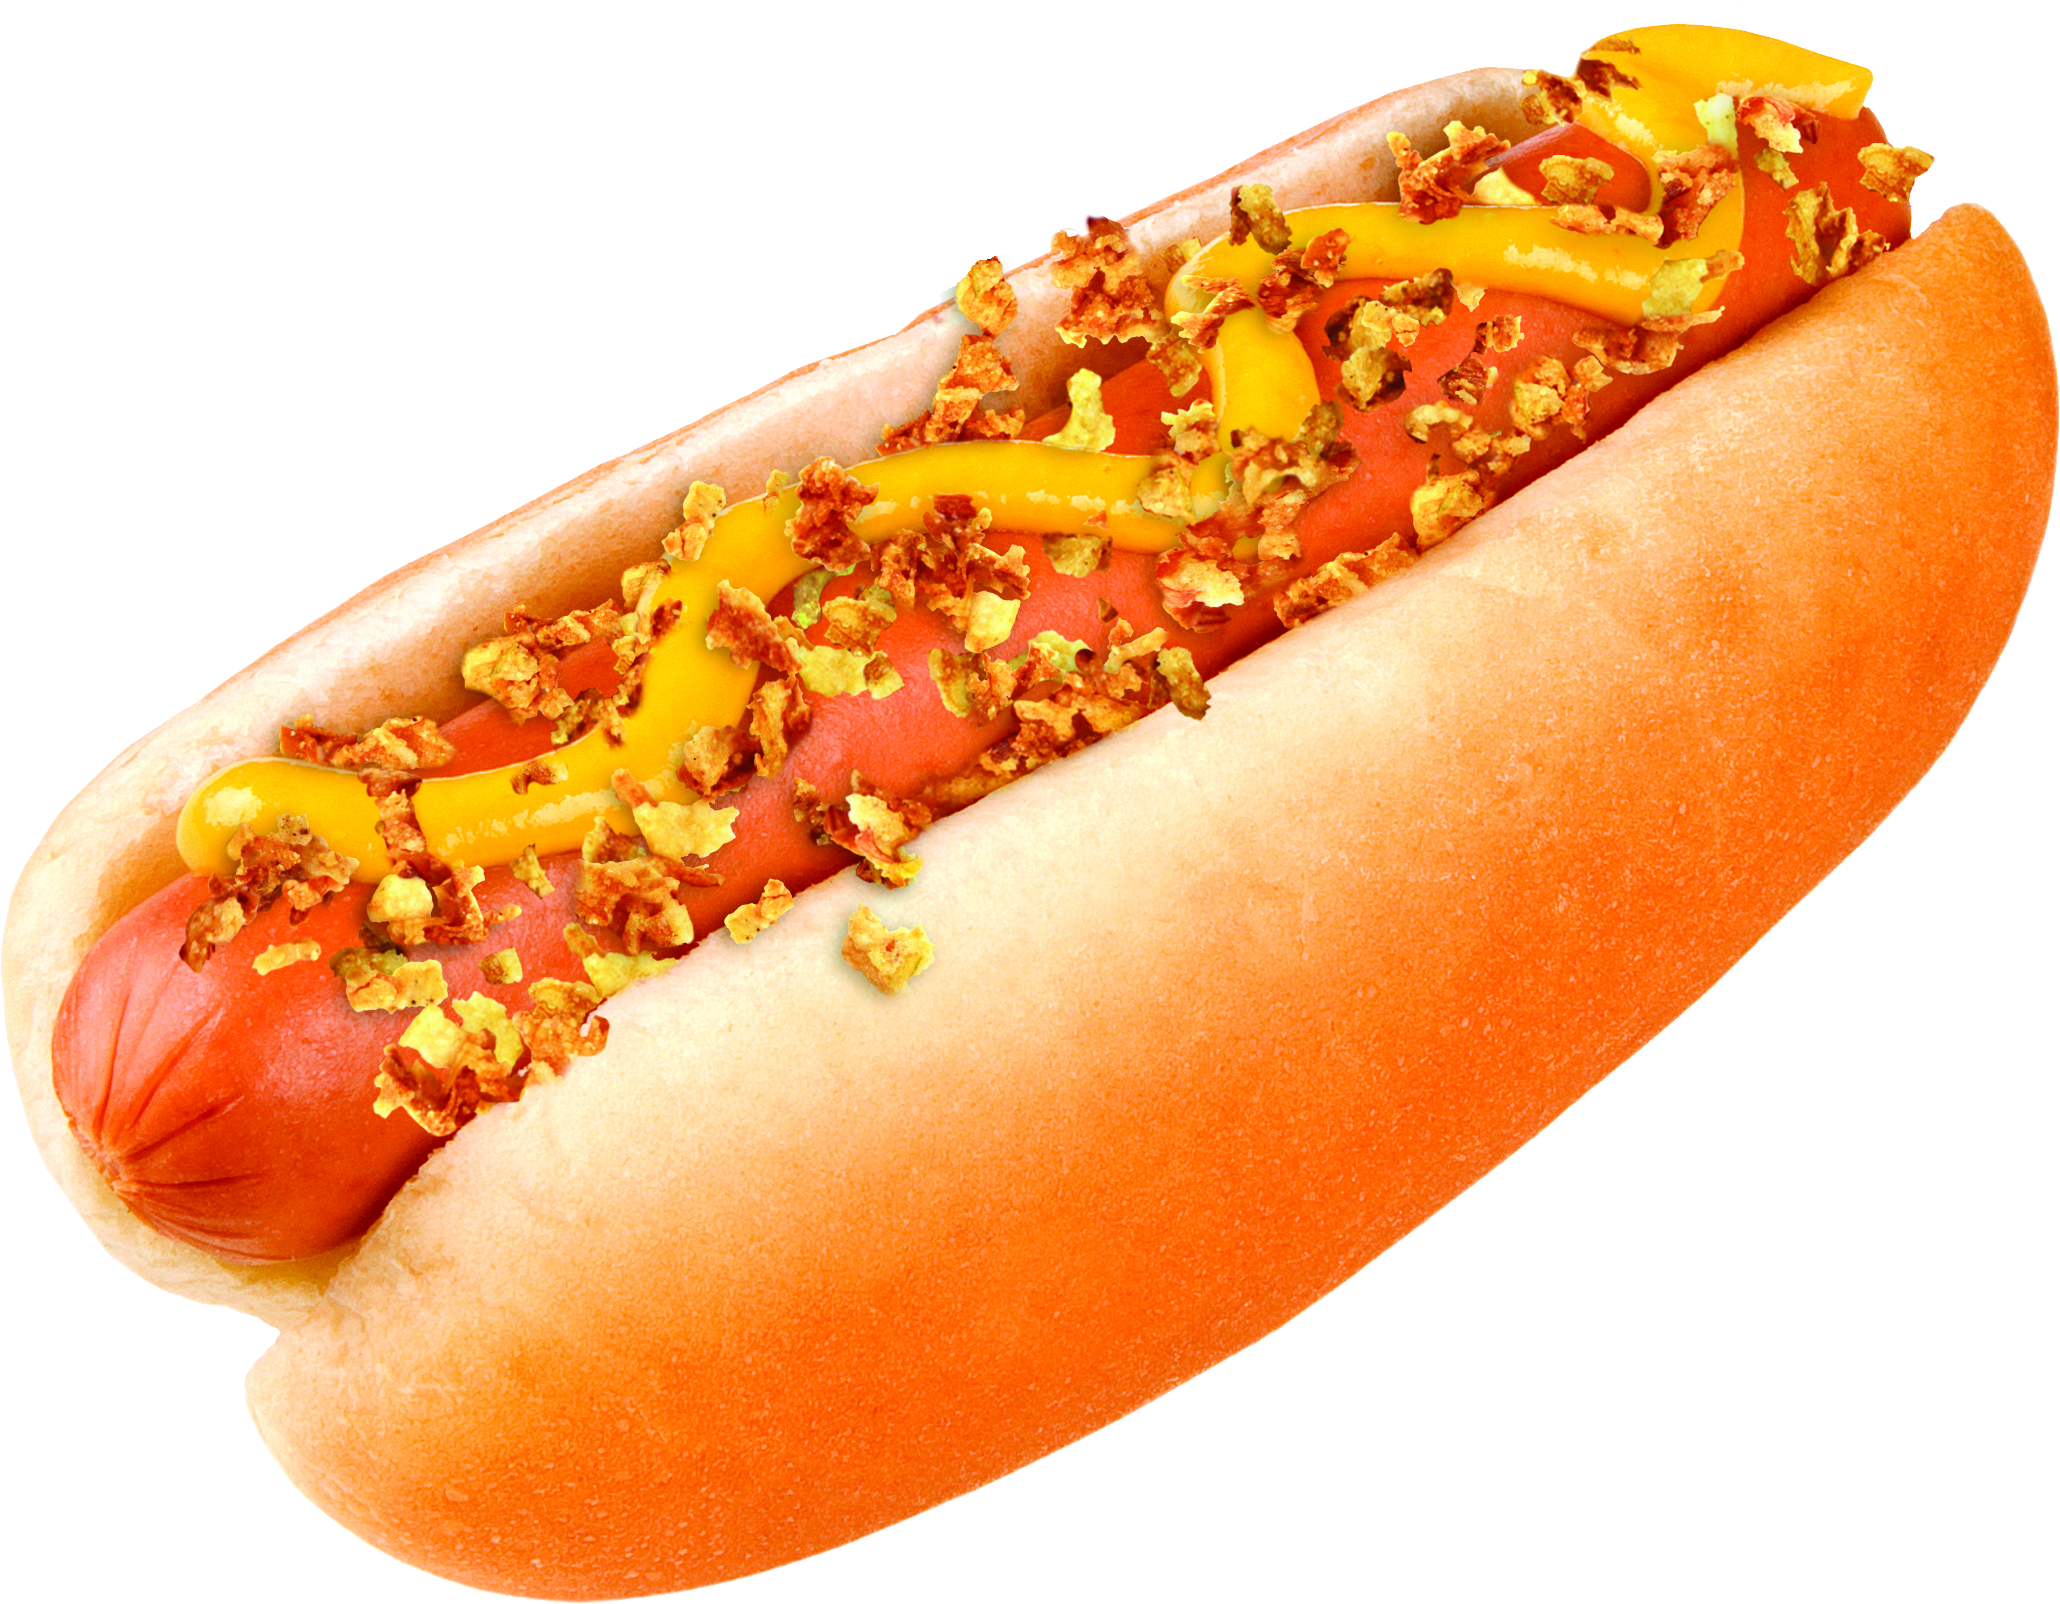 Chili dog clipart png library library Hot Dog PNG Image - PurePNG | Free transparent CC0 PNG Image Library png library library